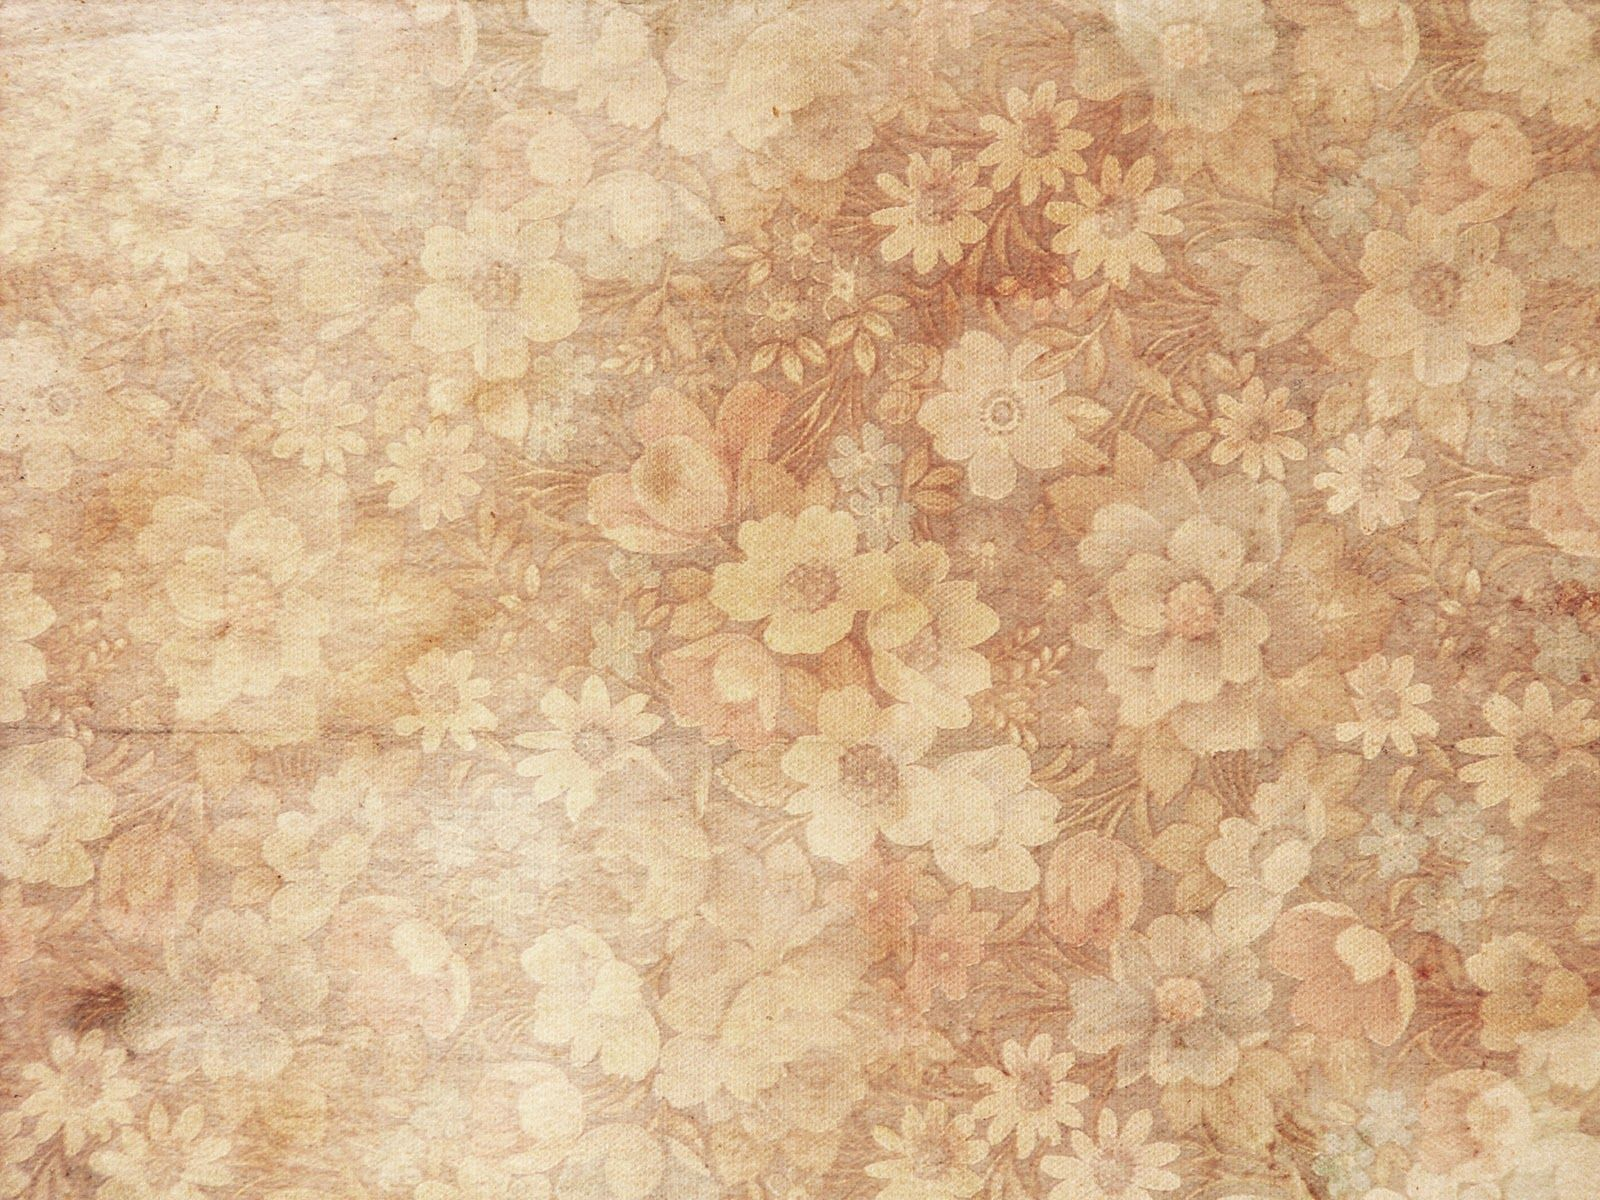 texture download floral background texture download free